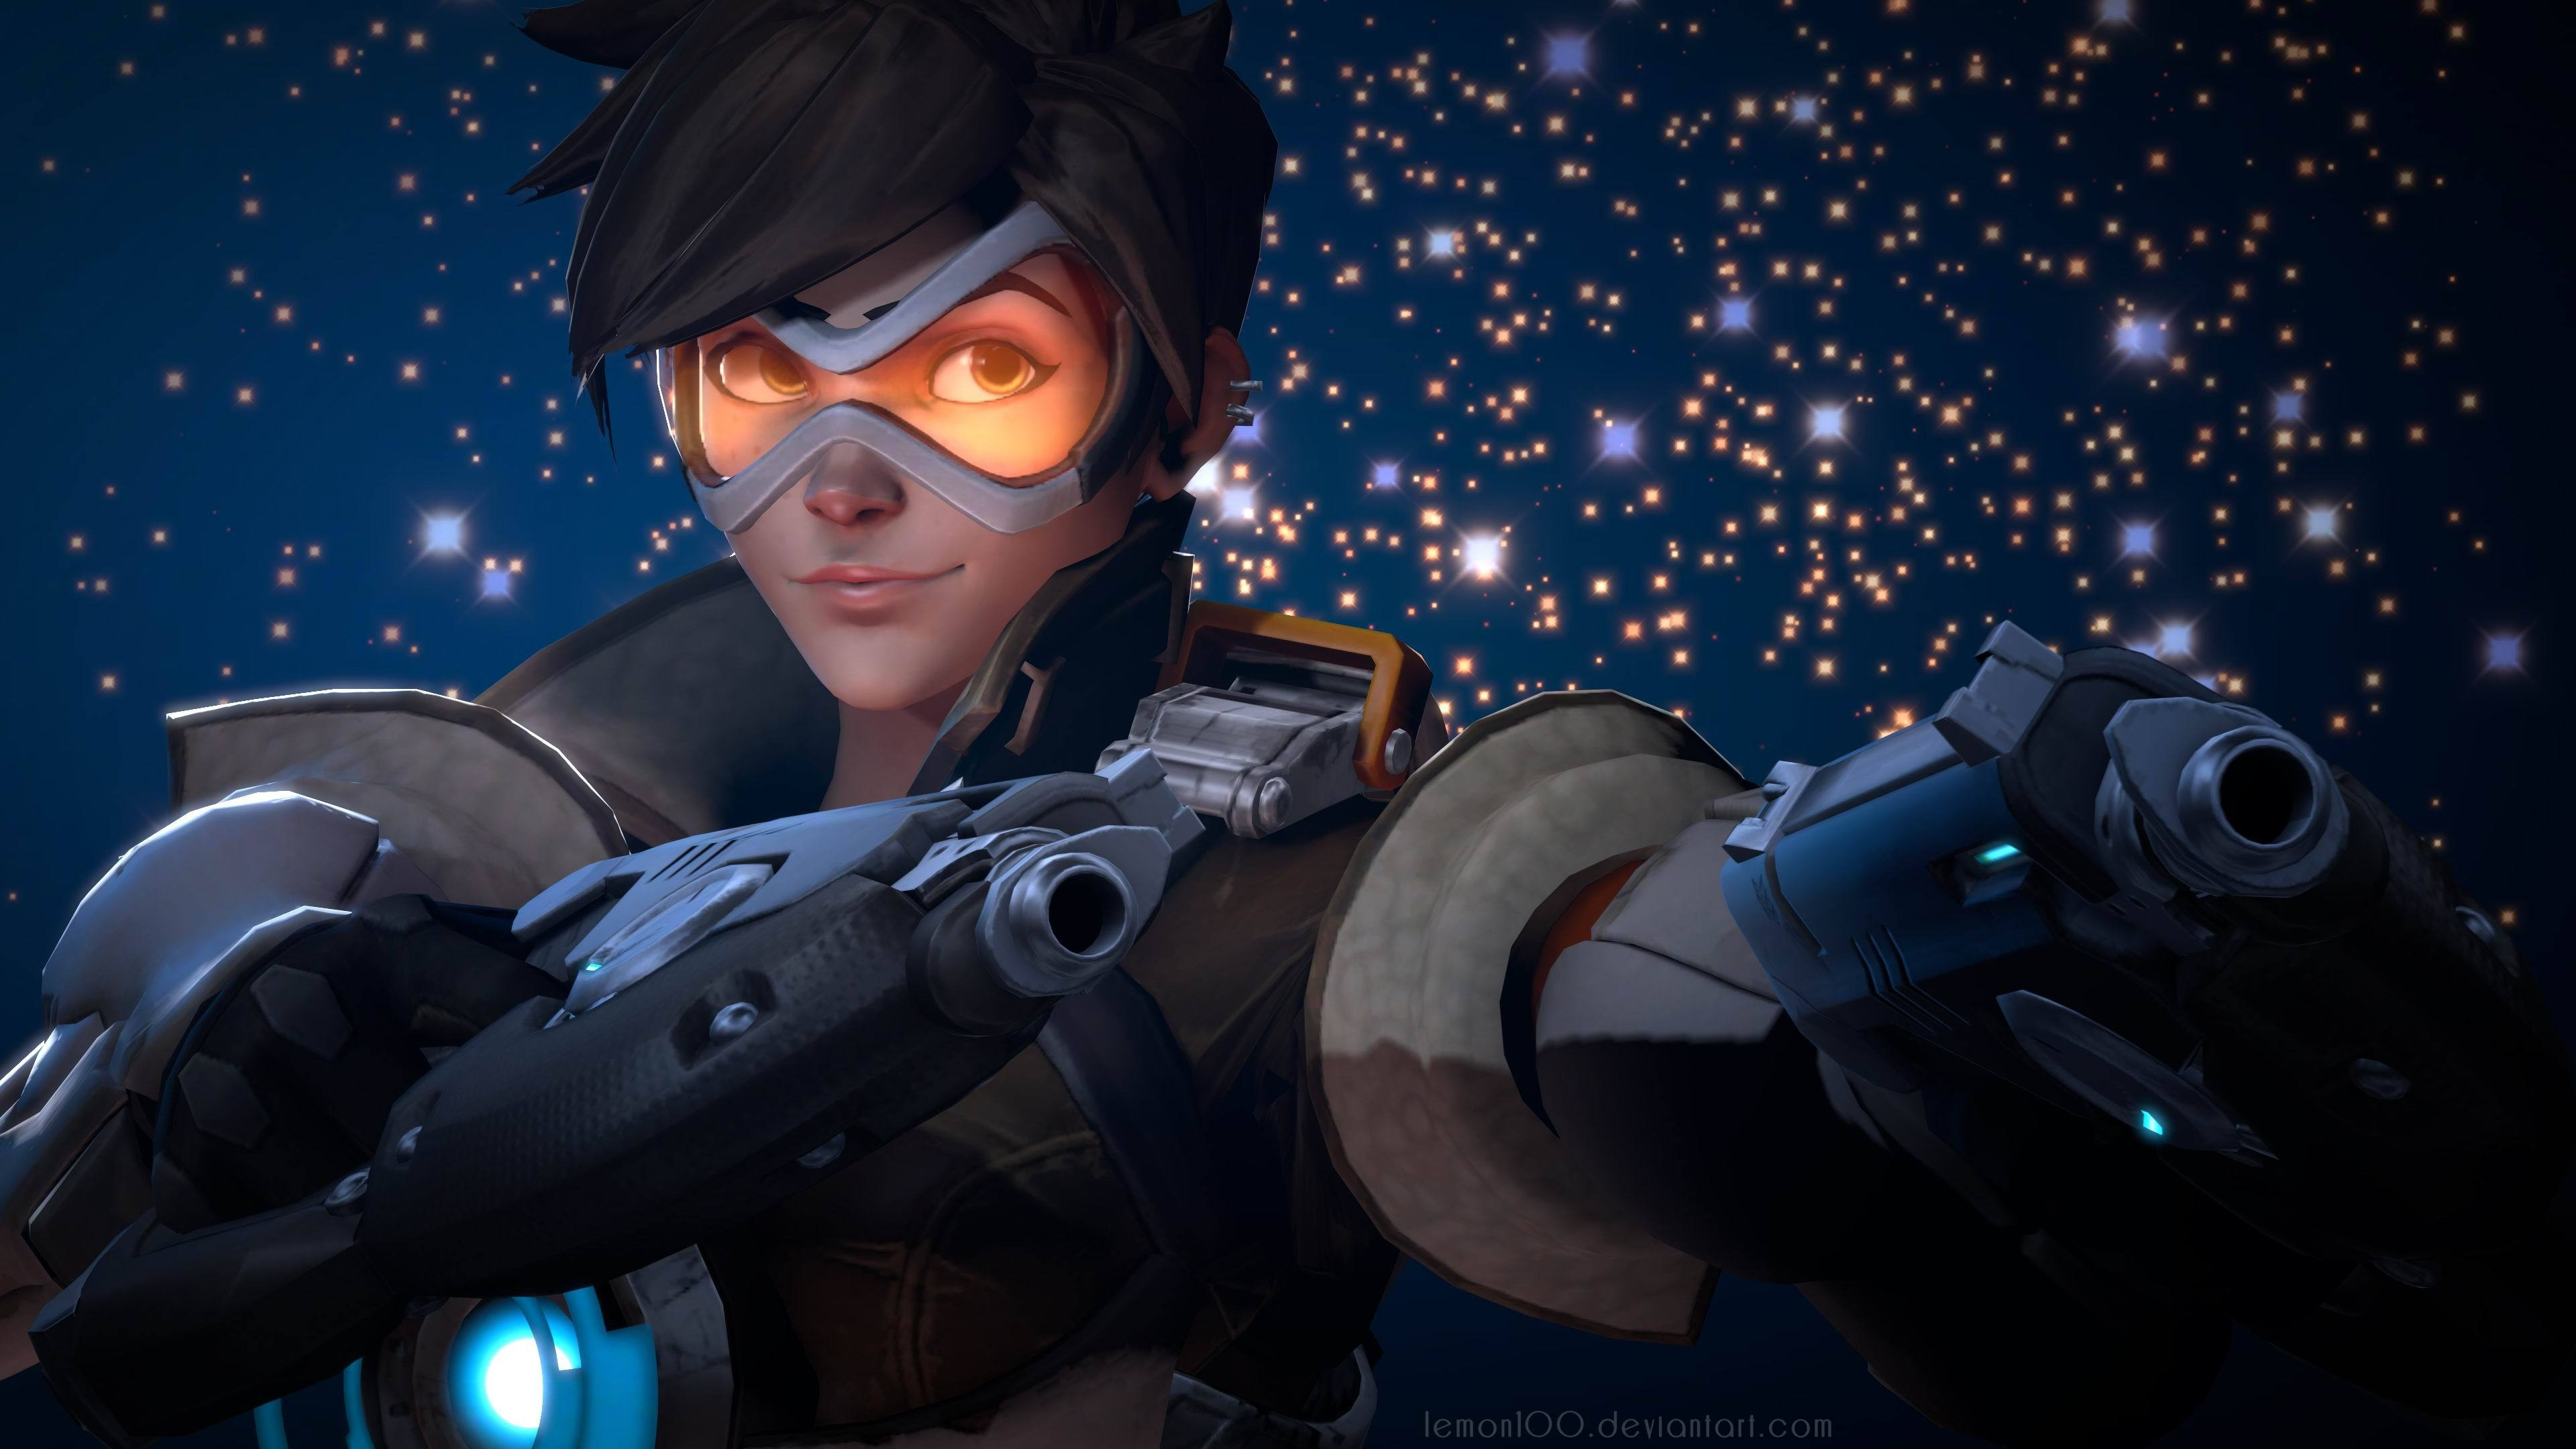 Wallpaper Overwatch Tracer 4k Games 14563 Page 3